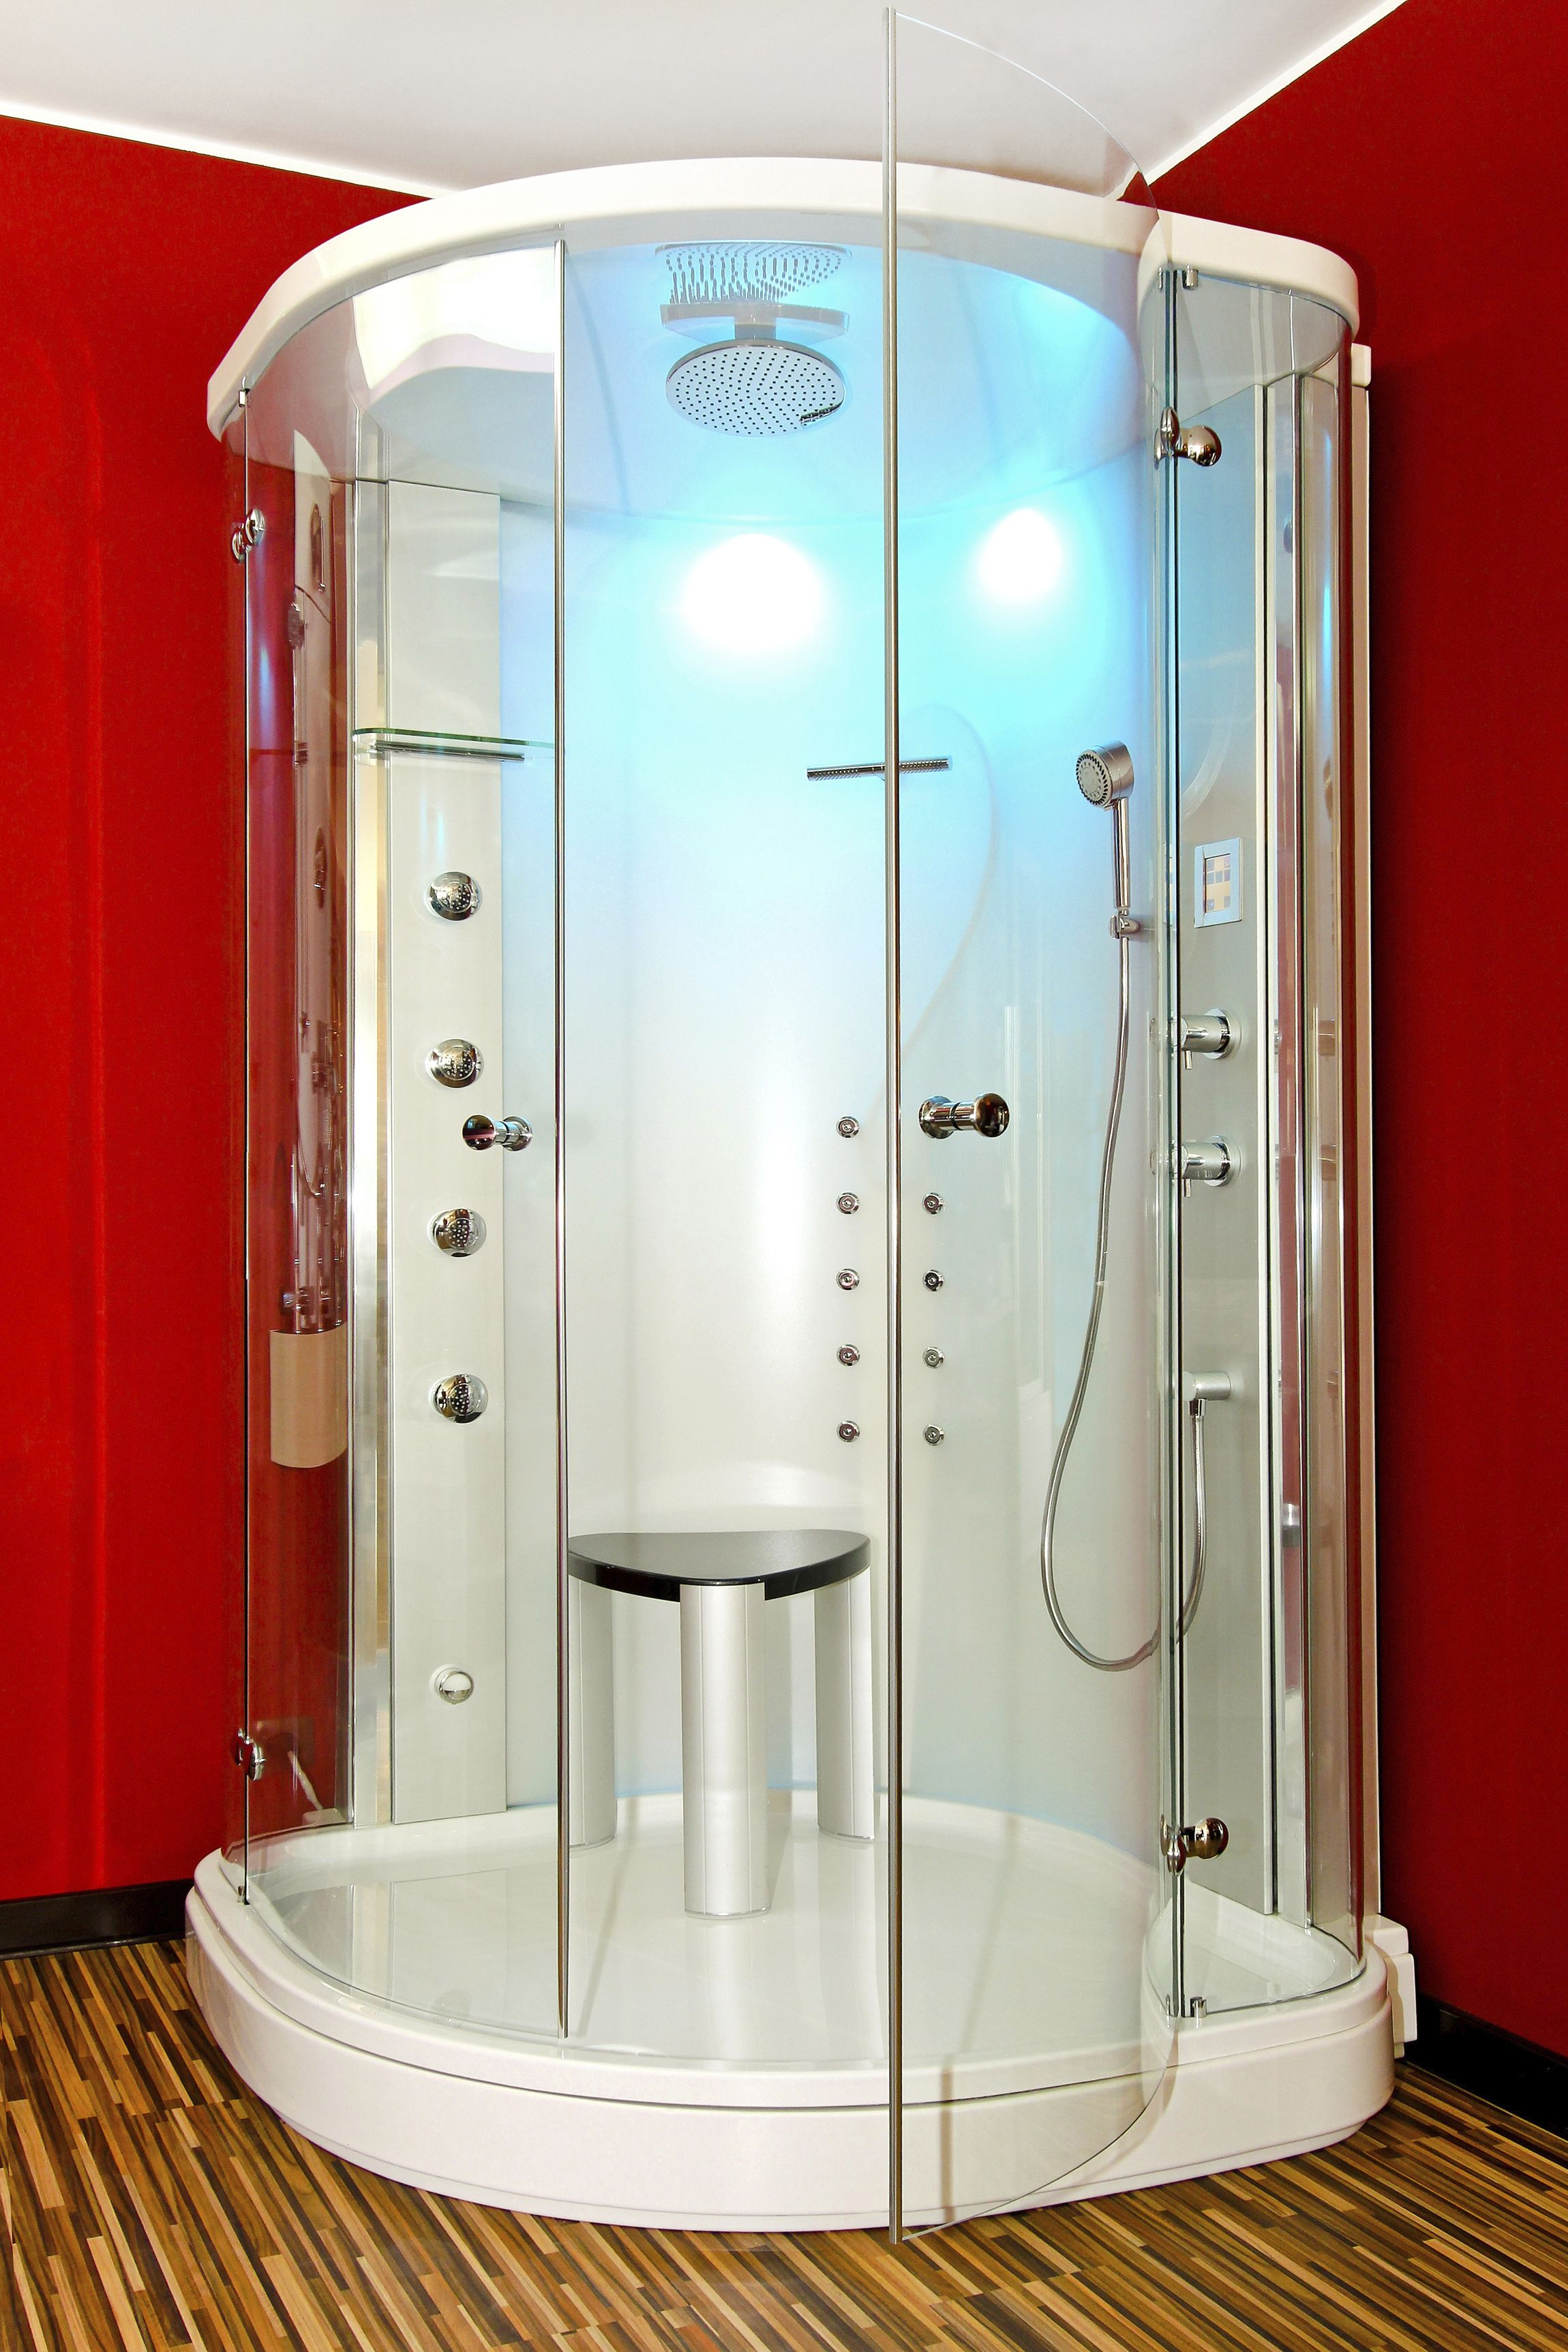 Futuristic Shower Stall Lighting With A Perfect Amount Of Red To